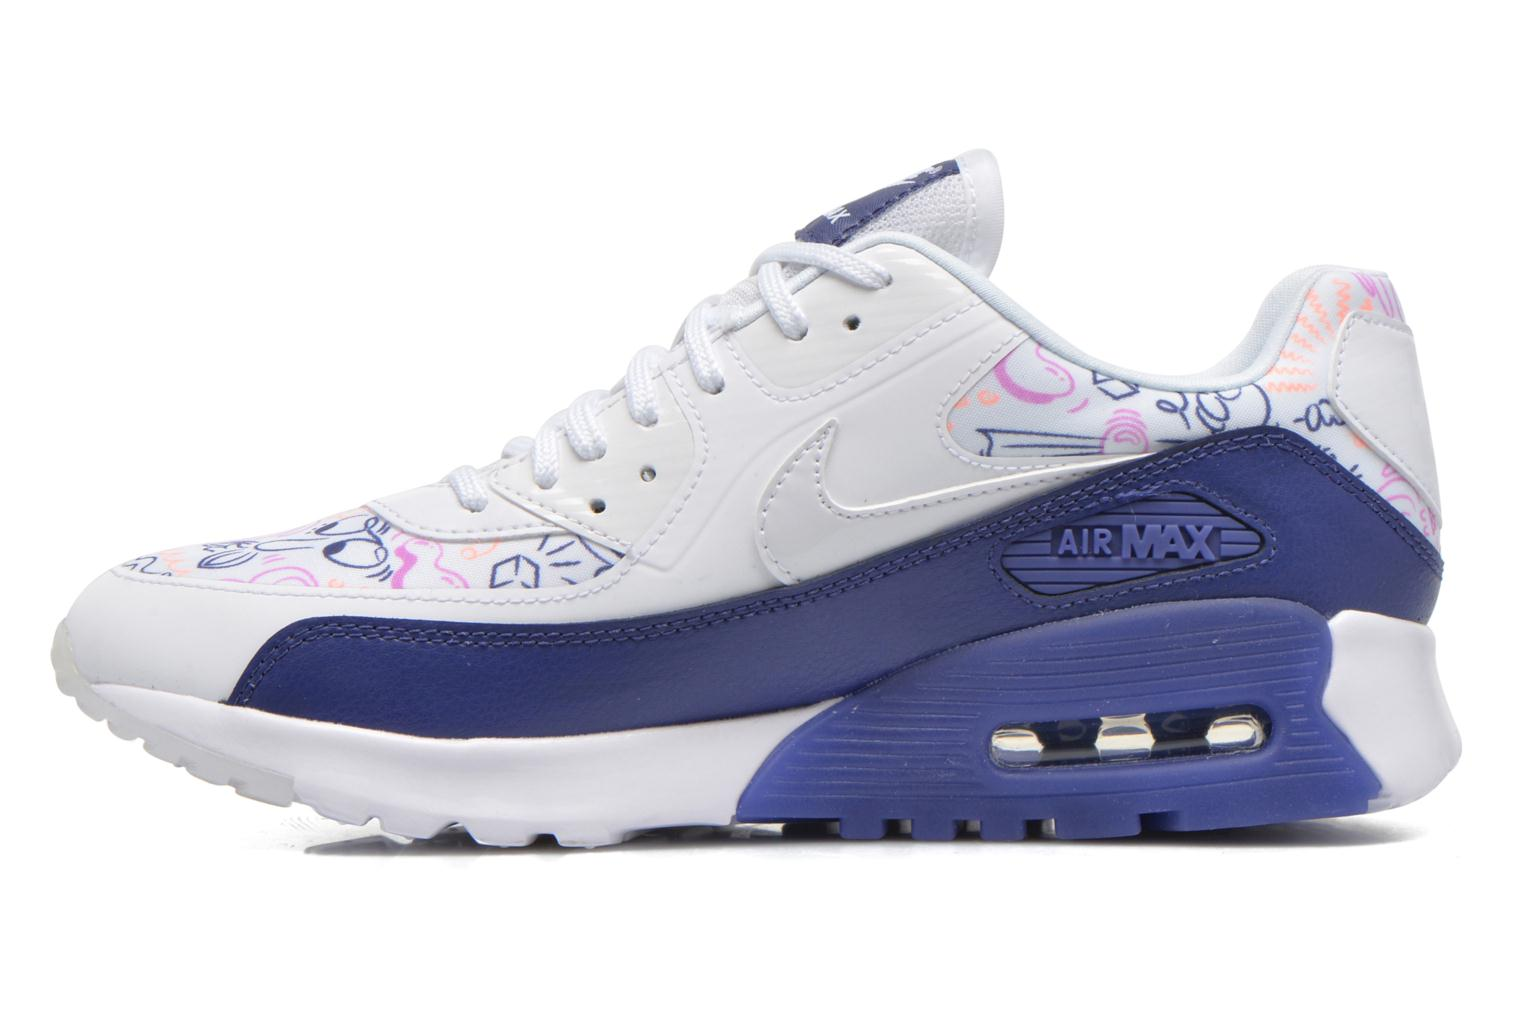 Nike W Air Max 90 Ultra Print Wit Outlet Verhandelbare opruiming NVLuOFyWkN